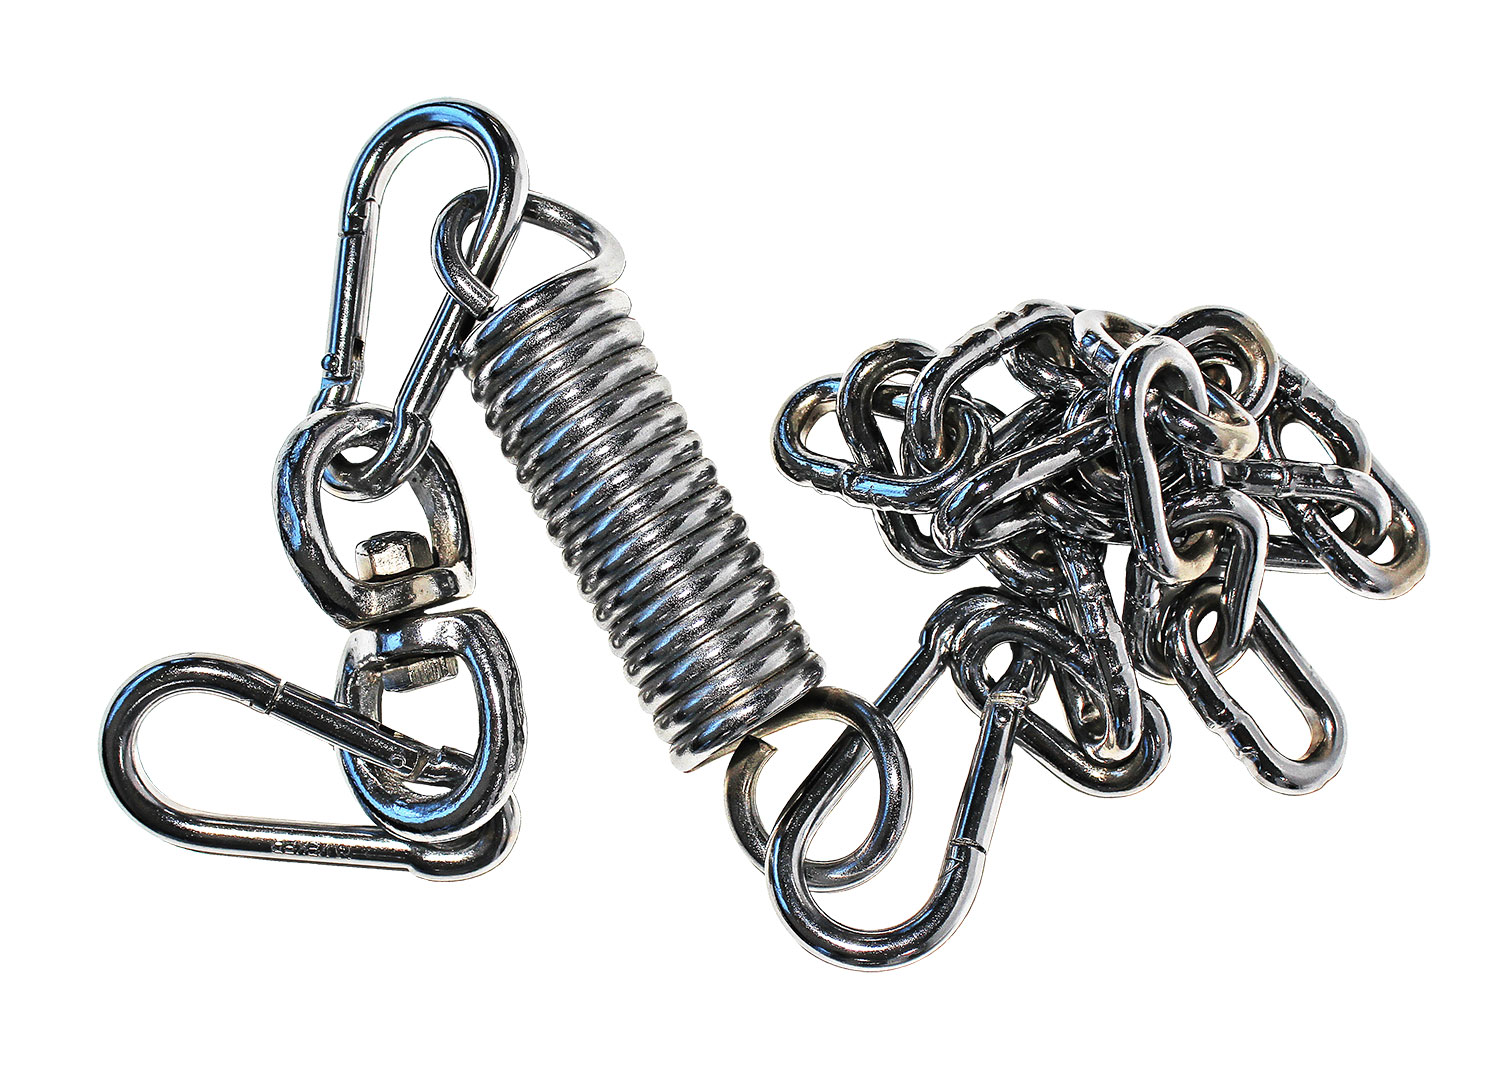 Advanced Heavy Bag Chain Set